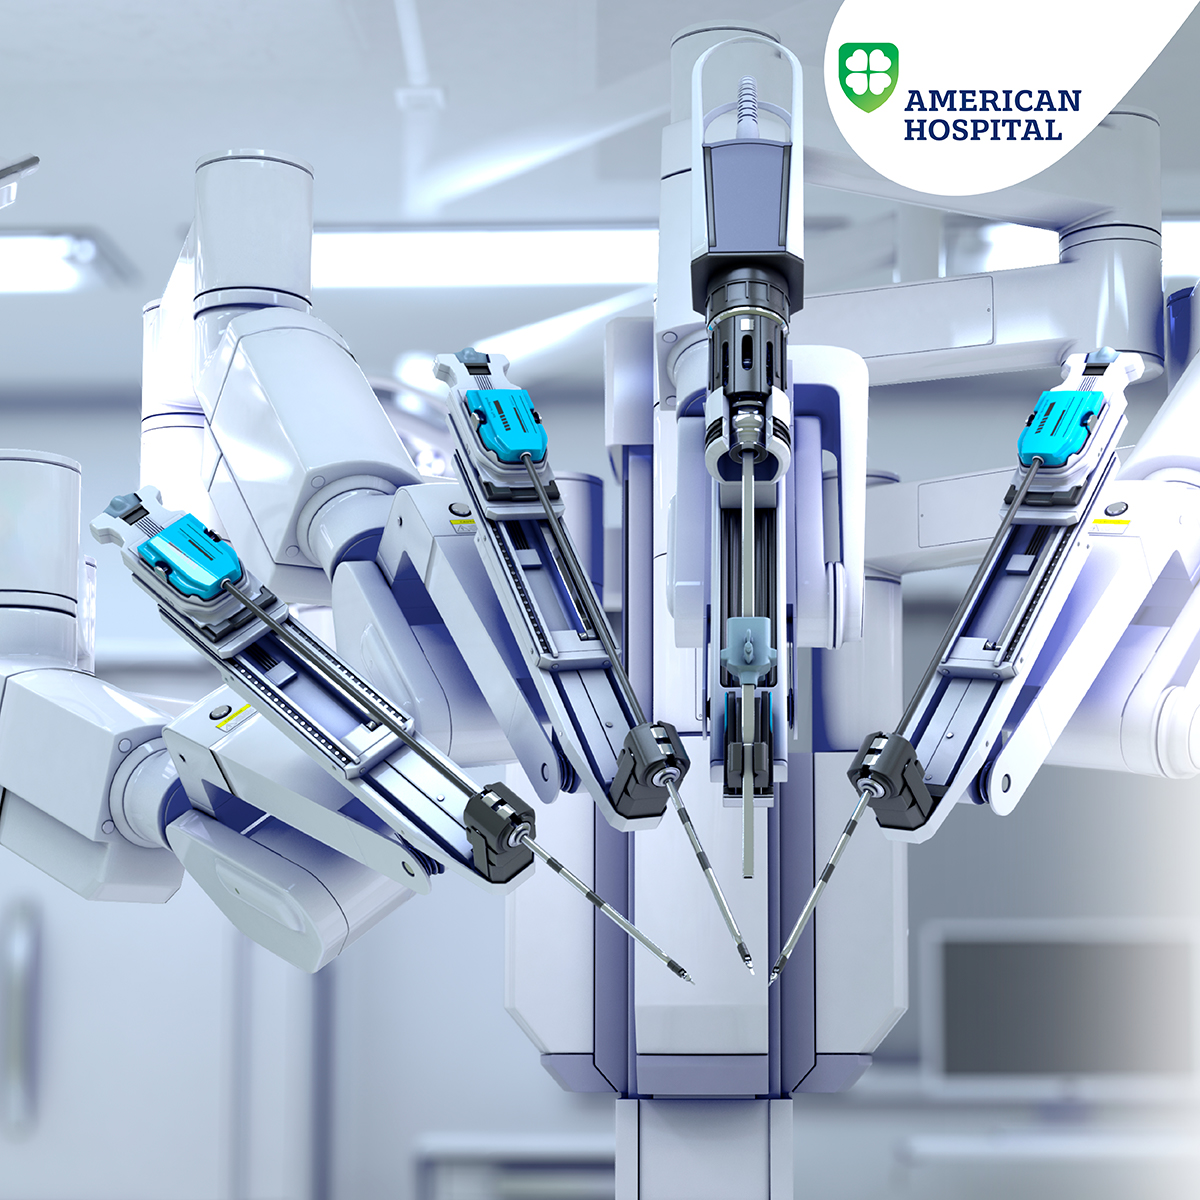 Robotic Surgeries